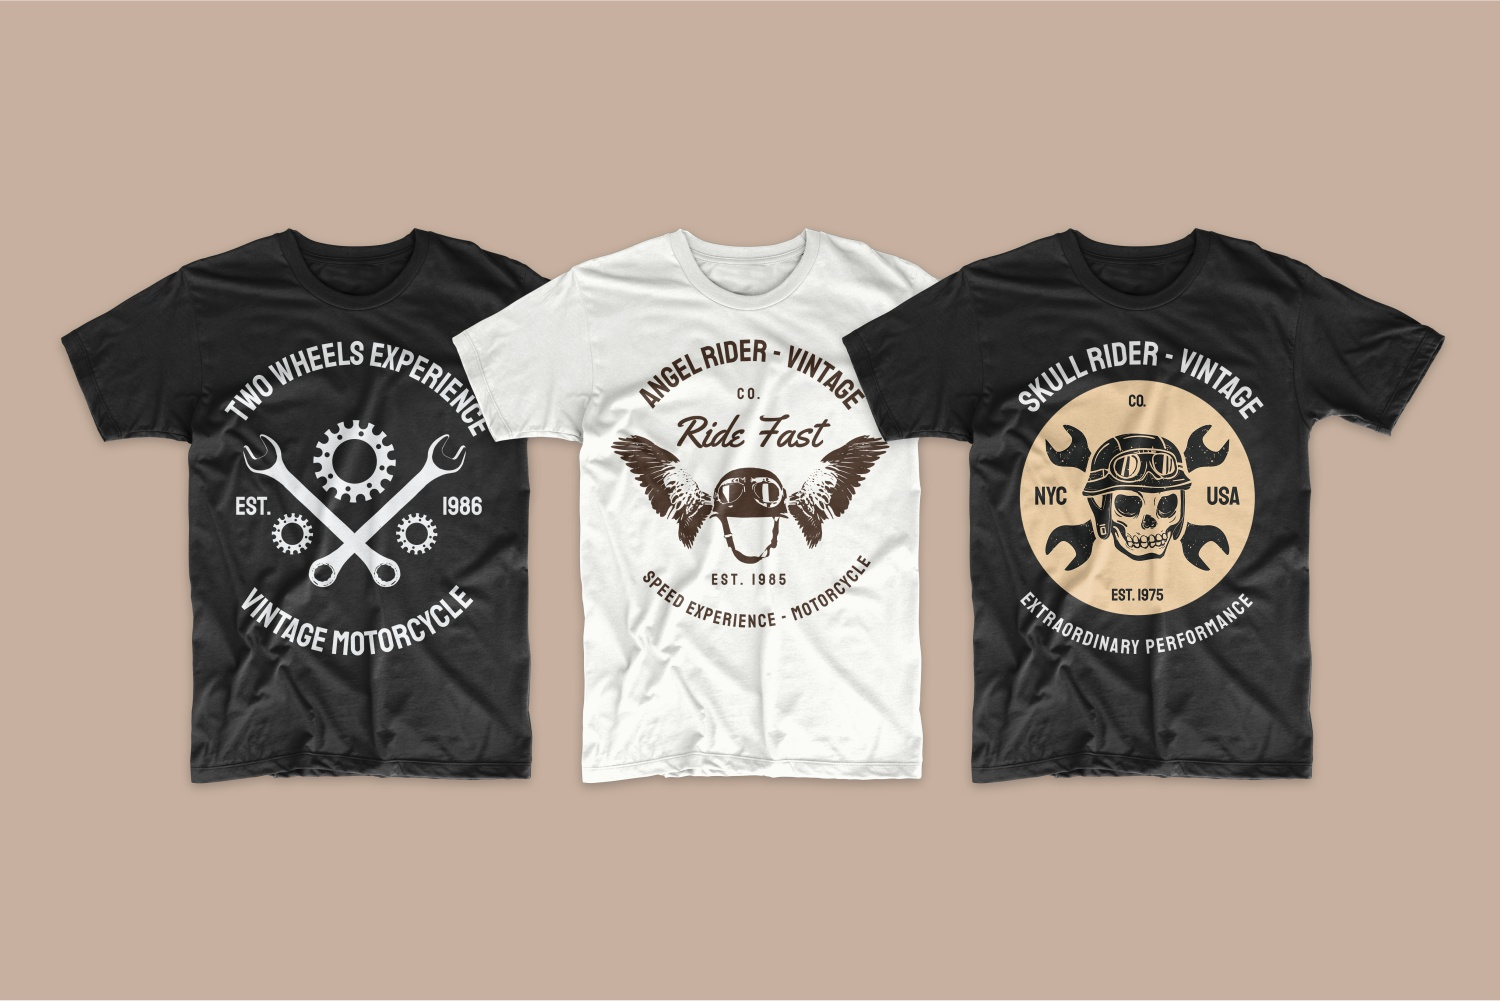 T-shirts in classic colors - white and black with a skull and a helmet with wings.